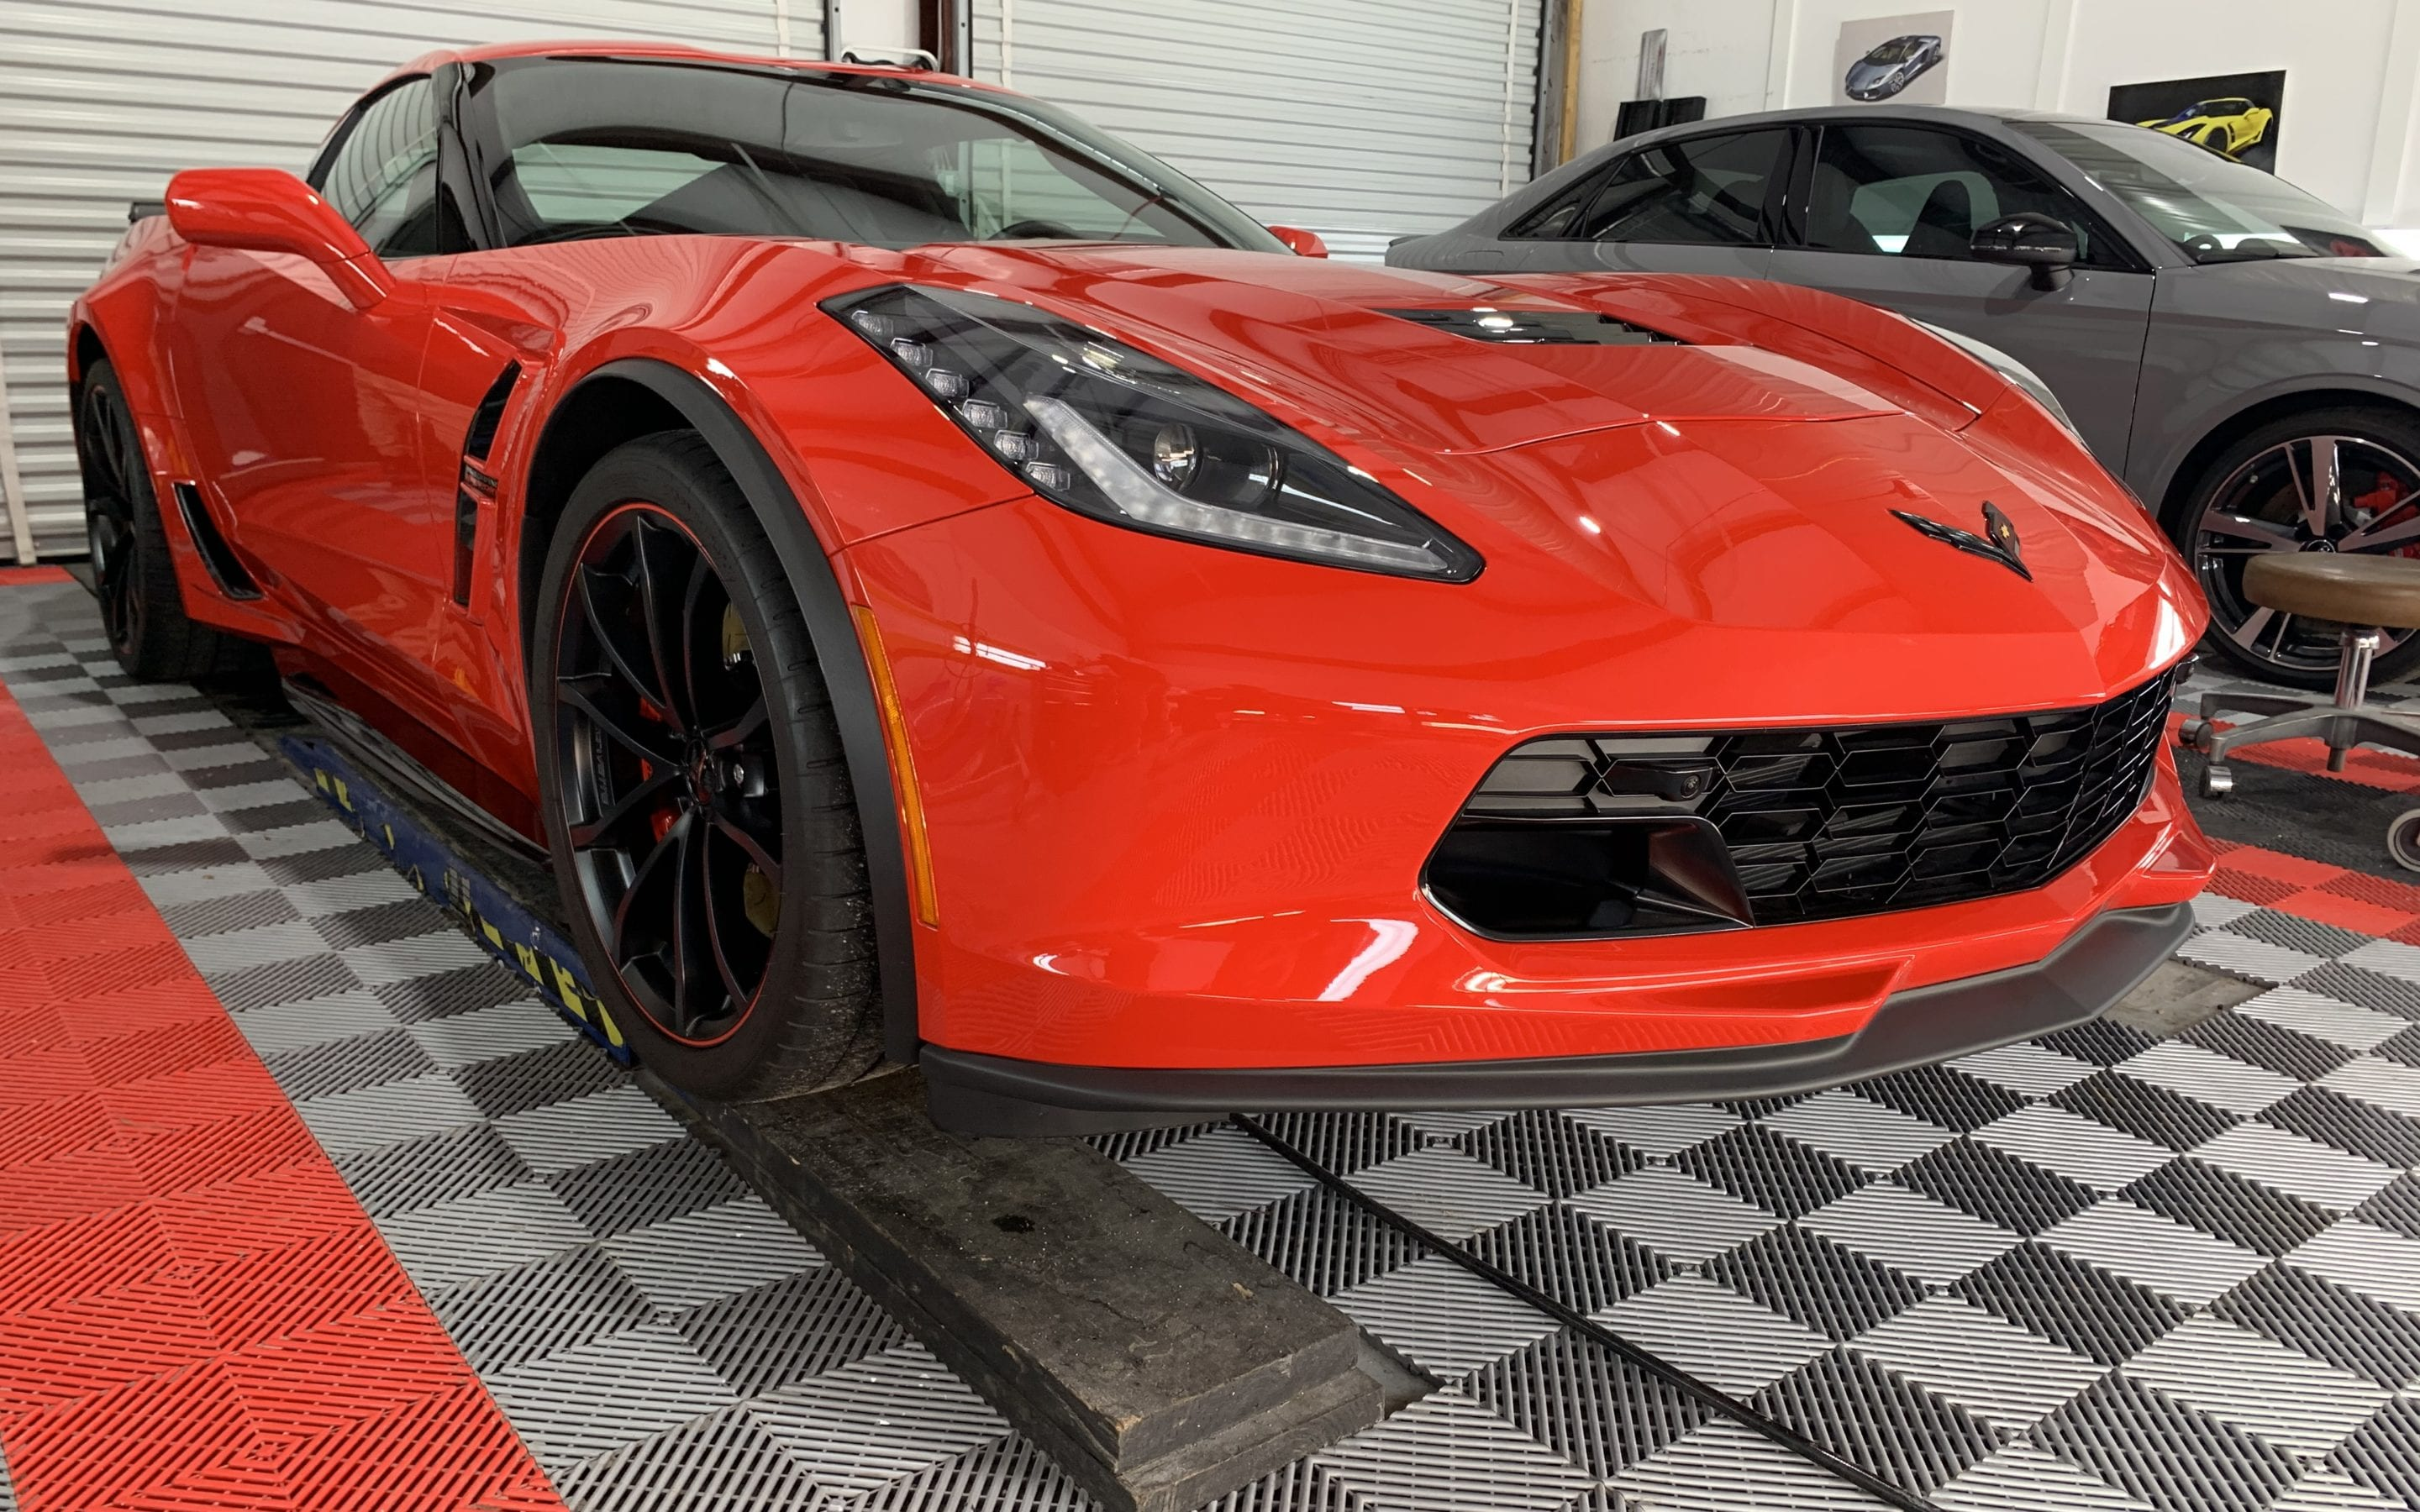 Ceramic Coating of a 2019 Chevrolet Corvette